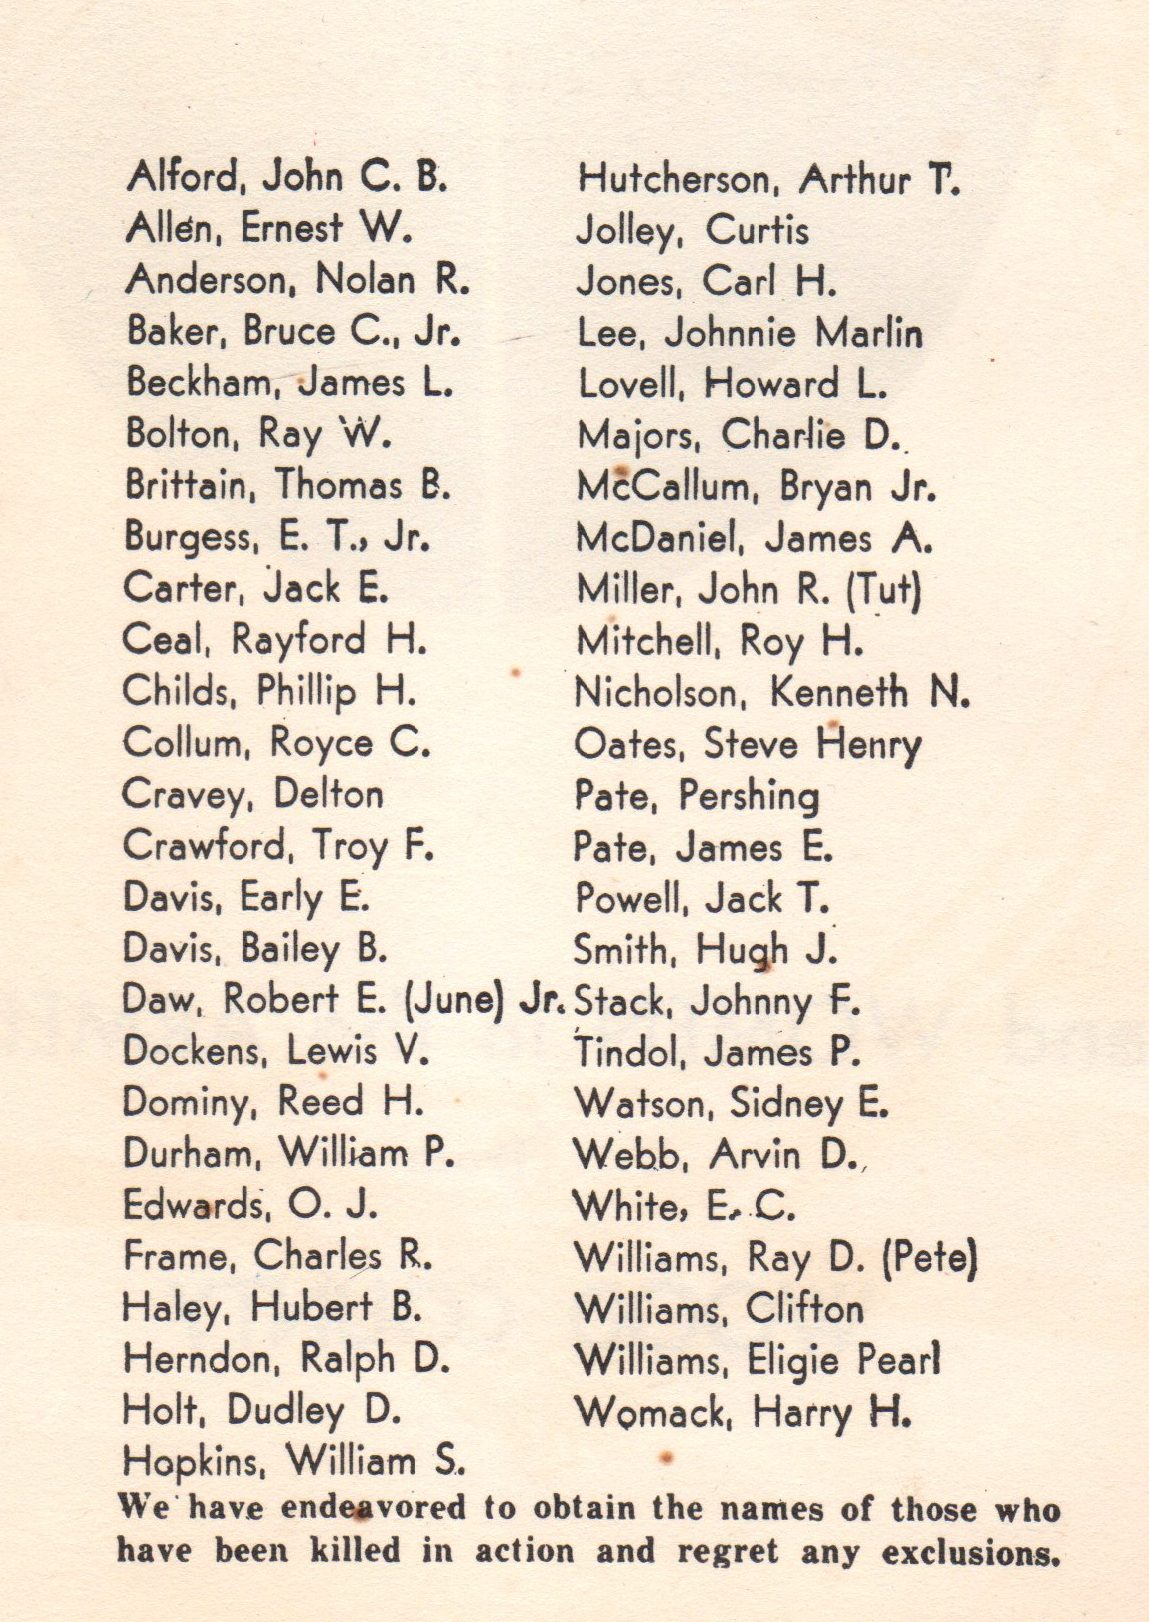 Men and women in the Armed Forces fromWoods County Texas Killed in Action